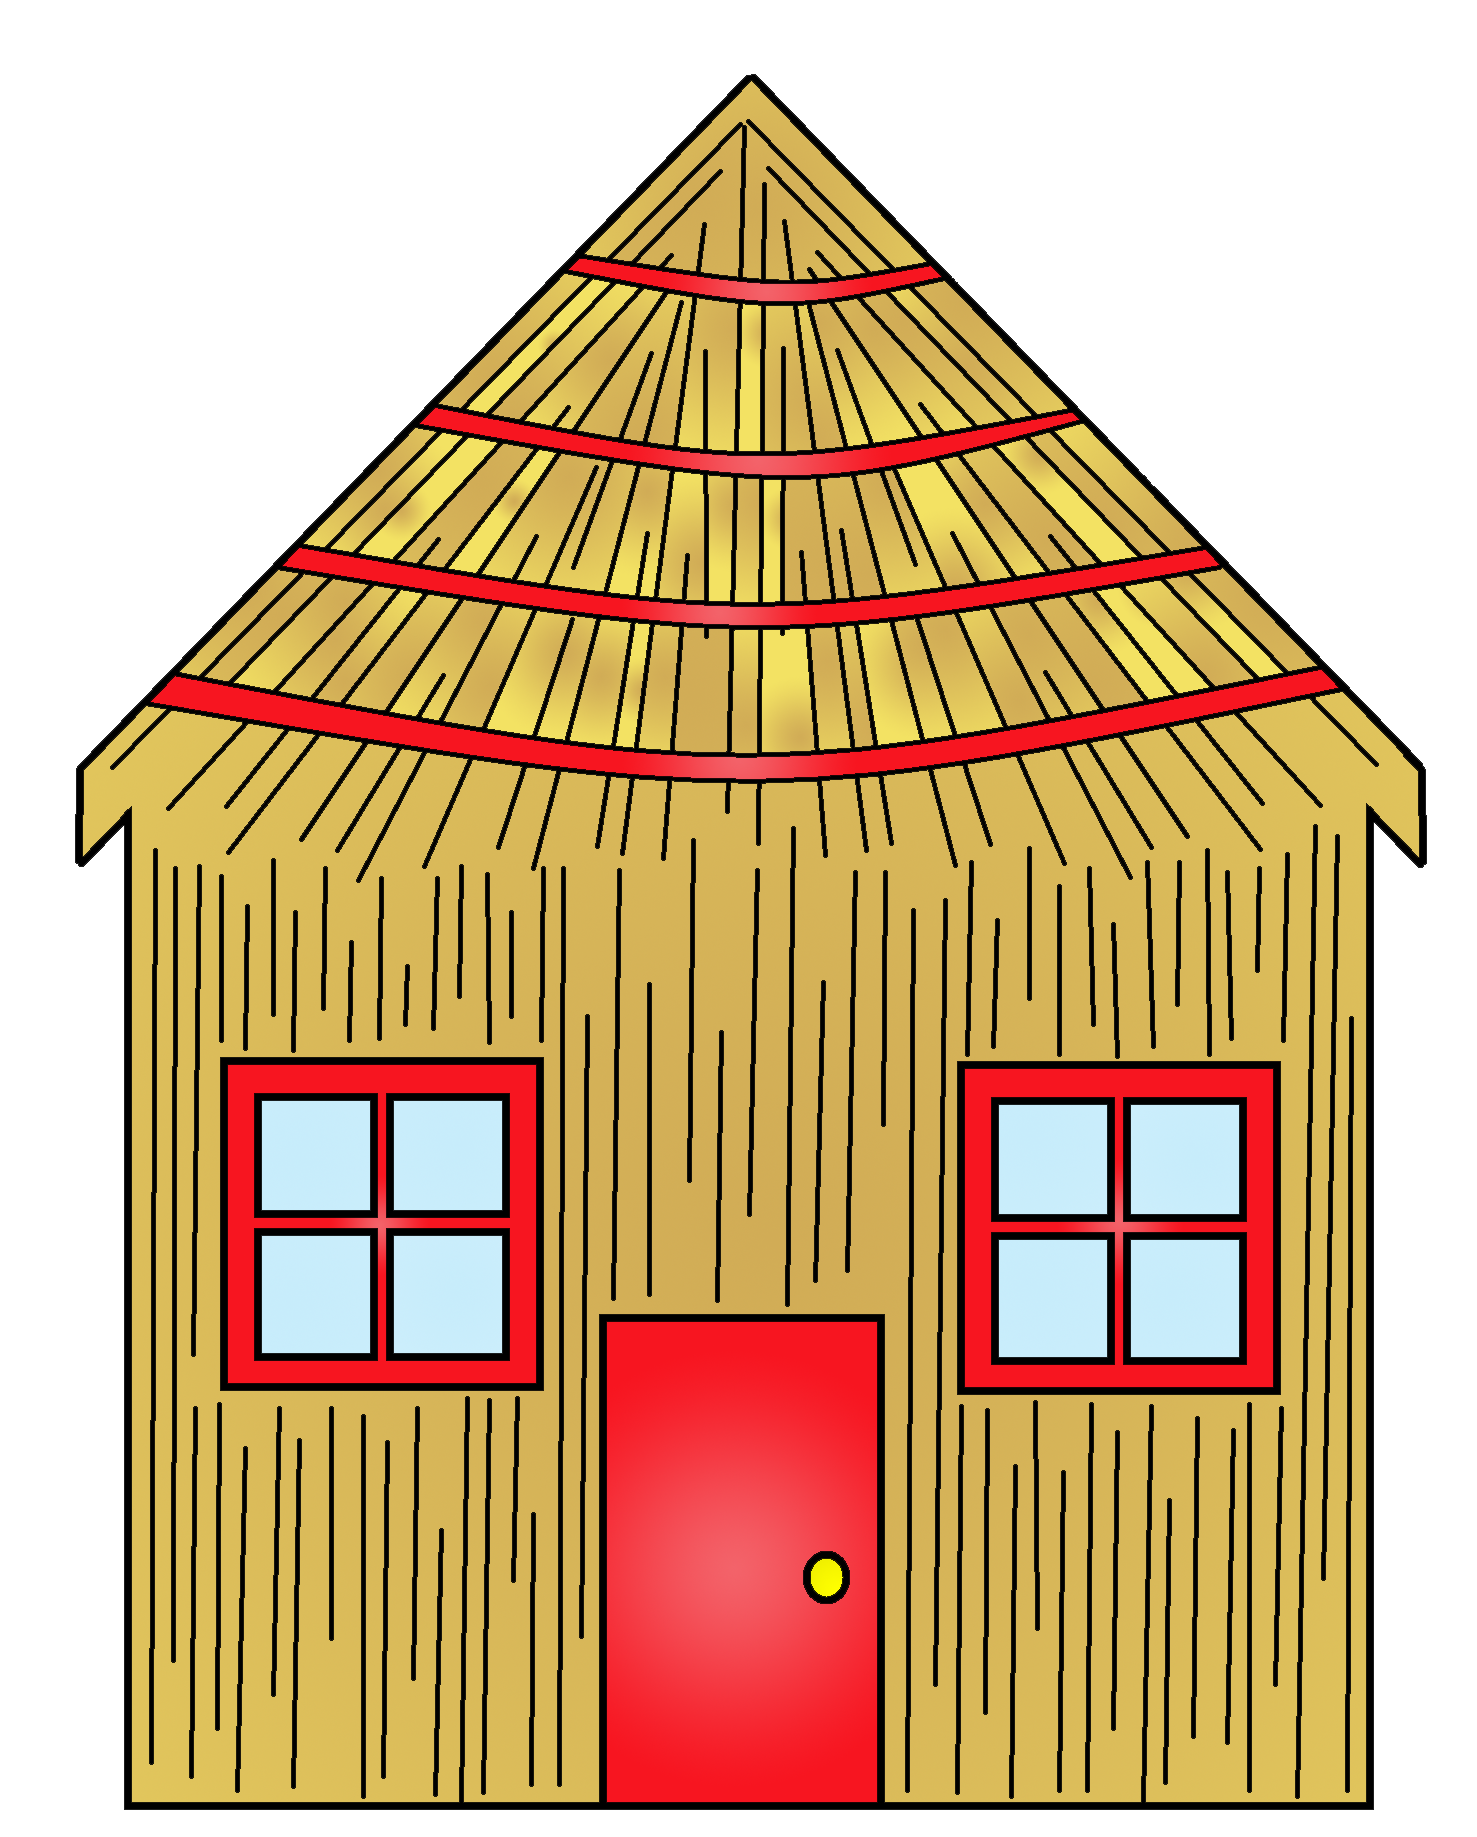 Old house clipart png free download House of sticks clipart png free download